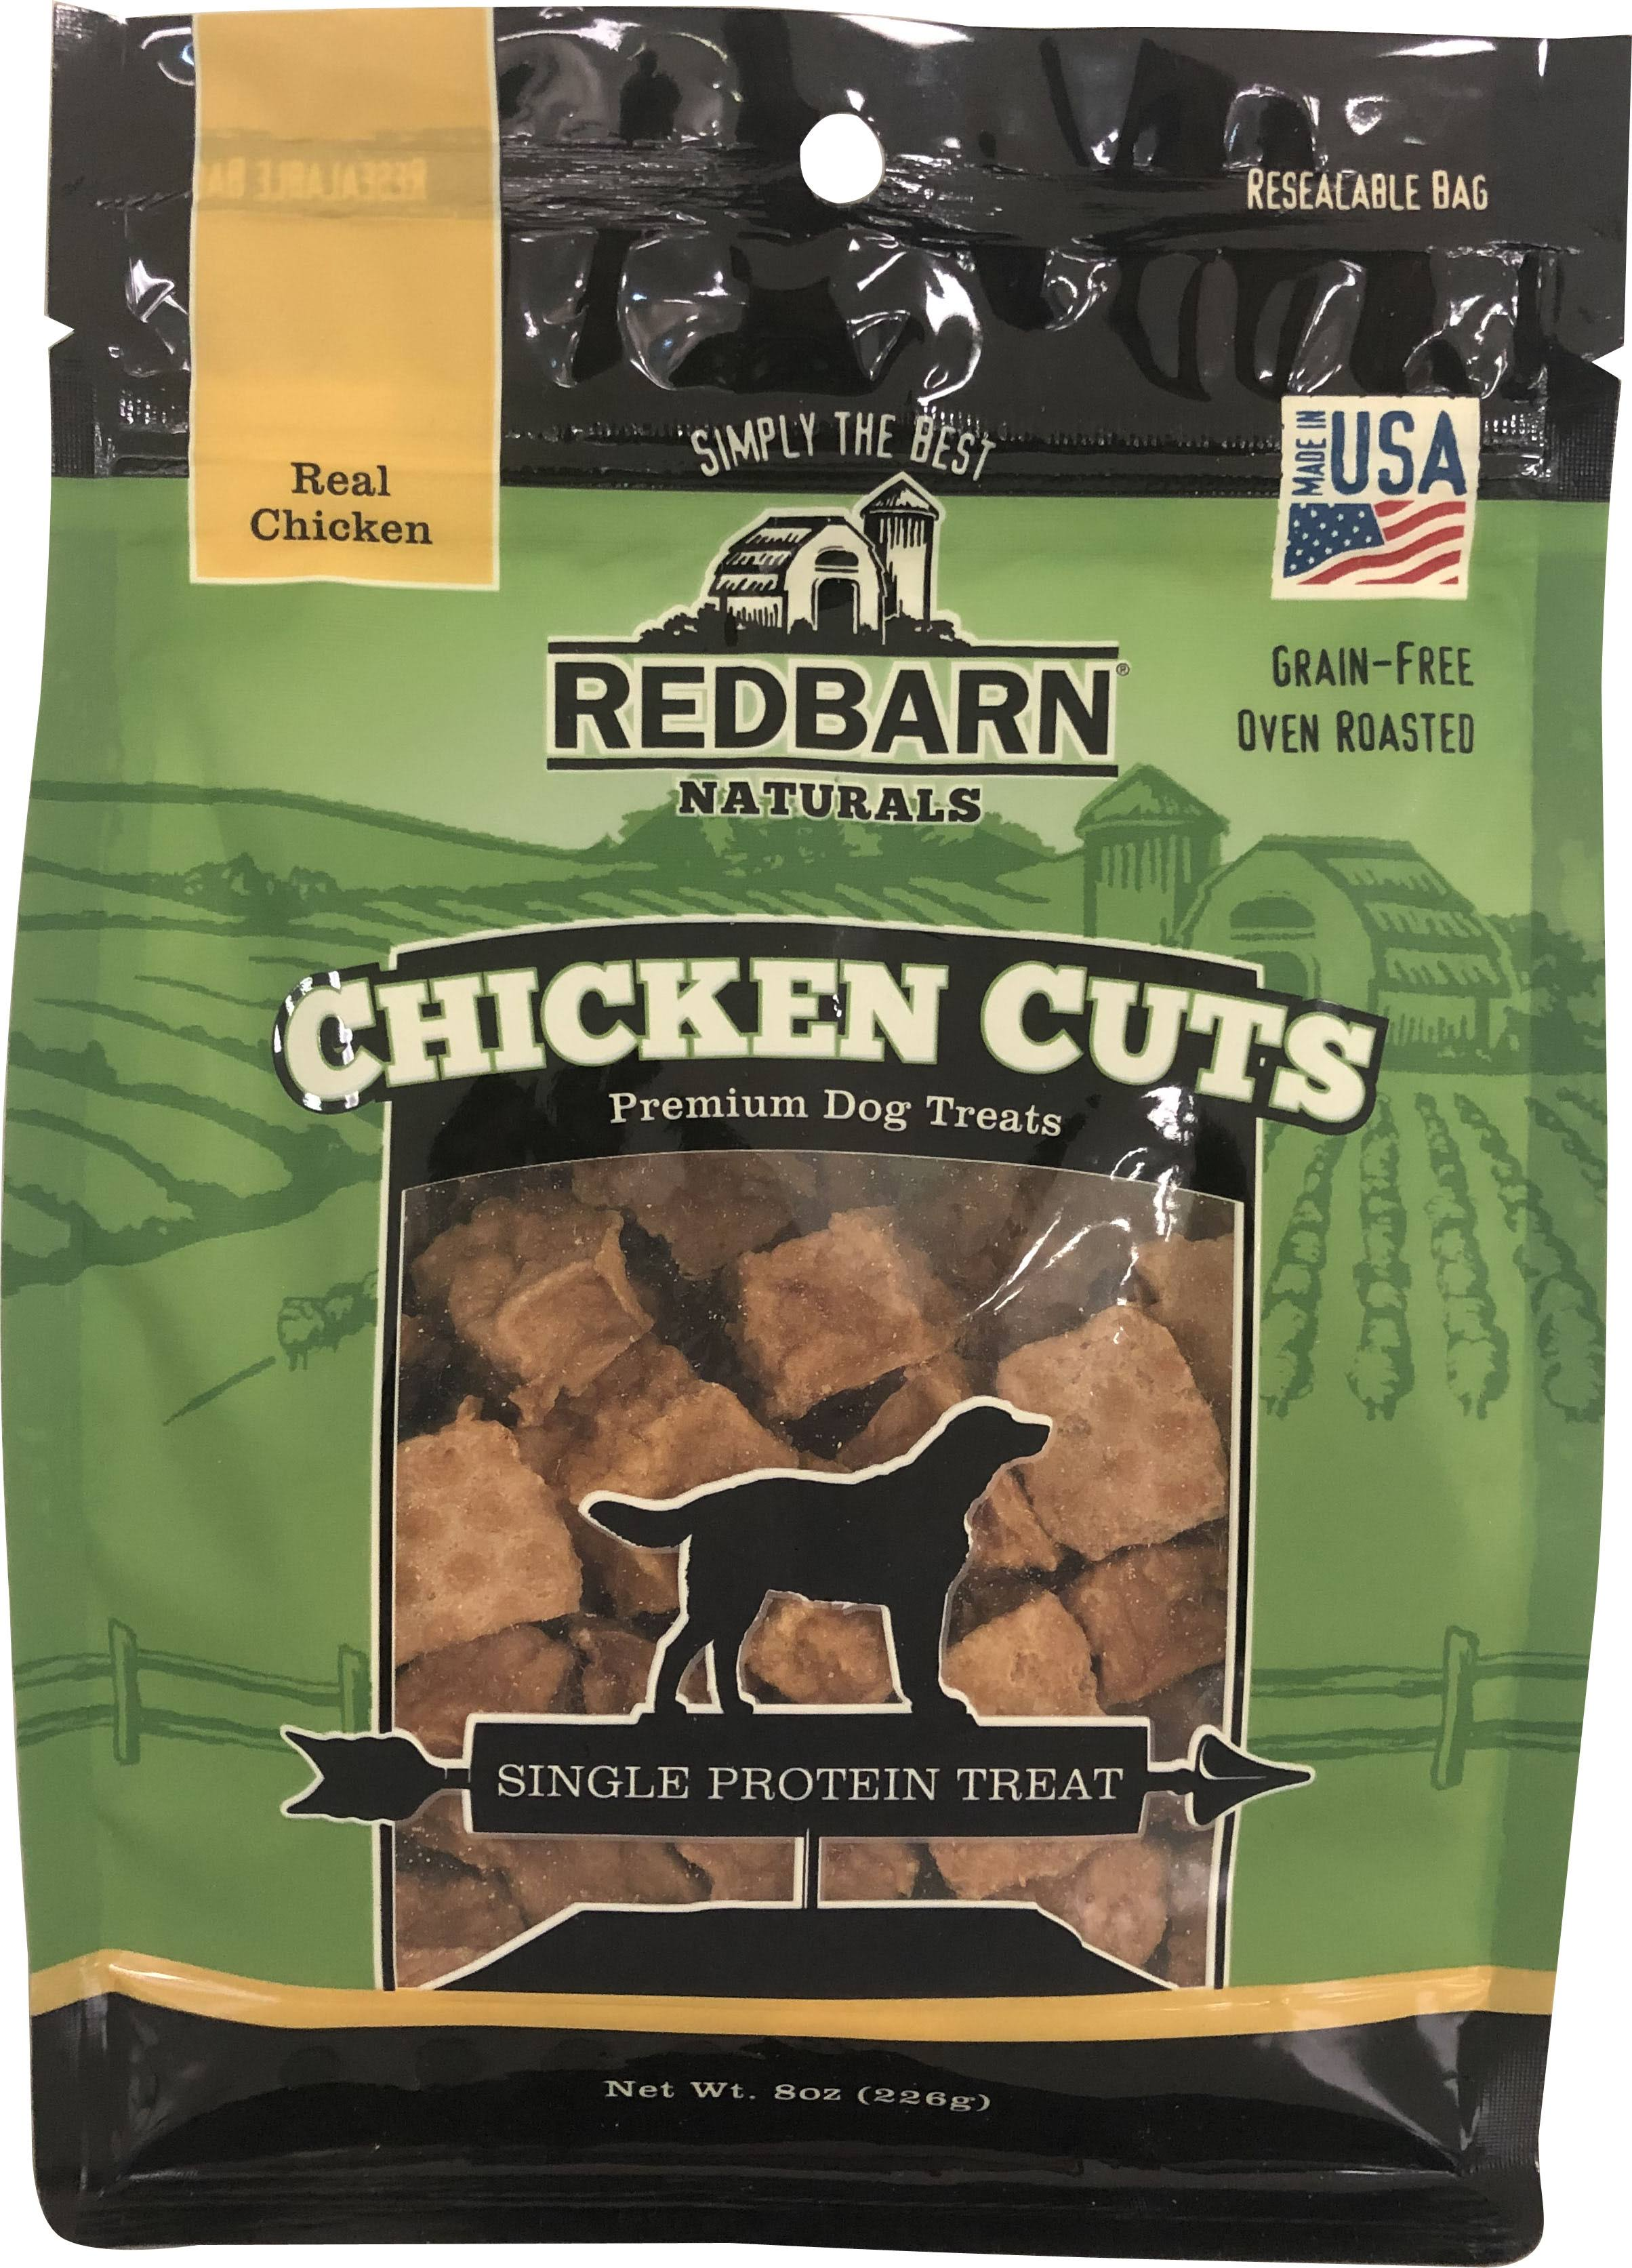 Redbarn Naturals Dog Treats, Premium, Chicken Cuts - 8 oz